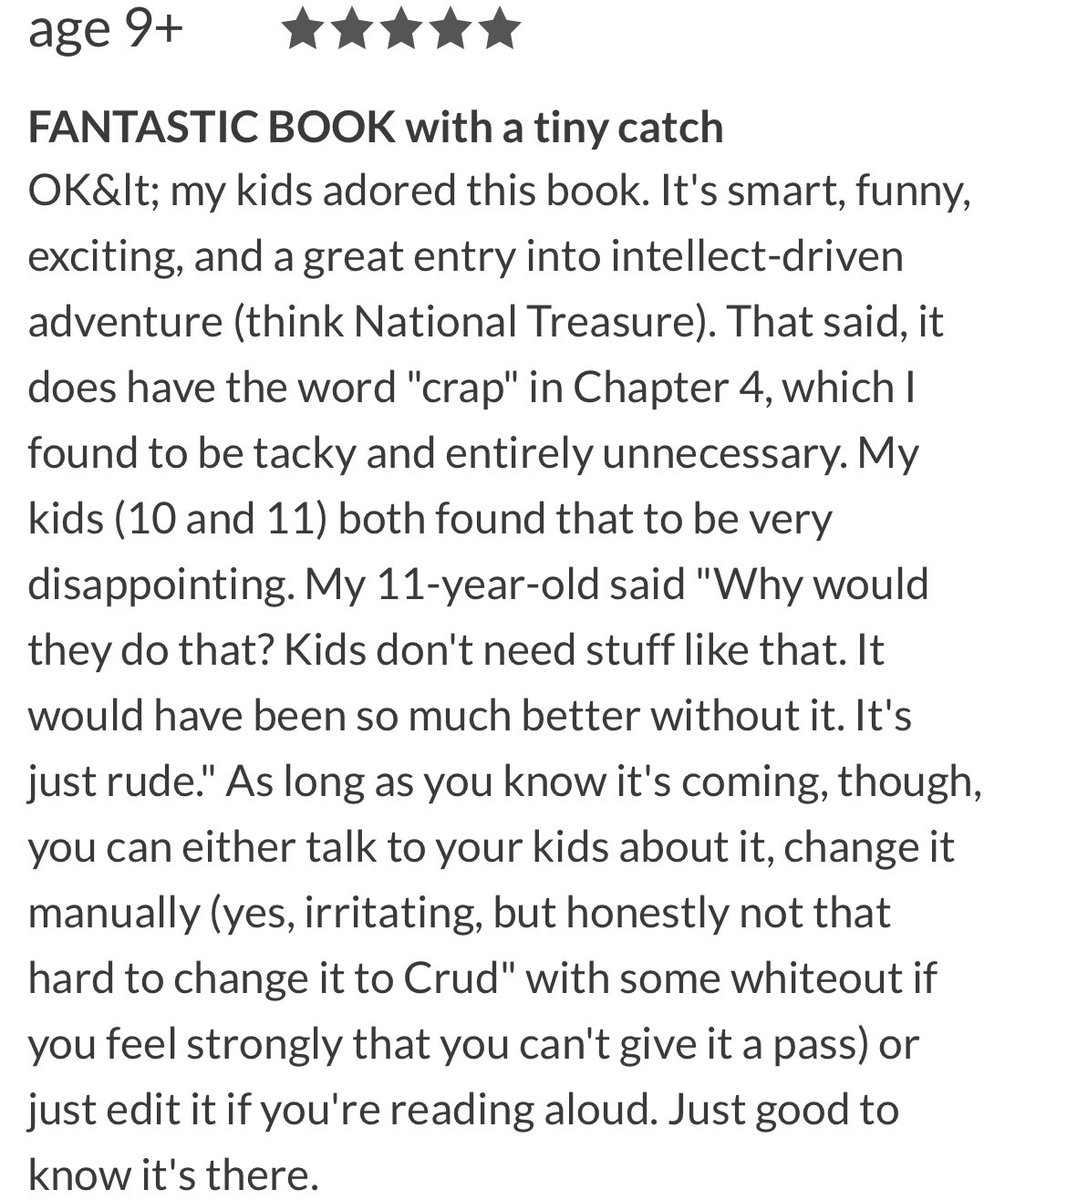 Anybody agree with what the book reviewer wrote here?!